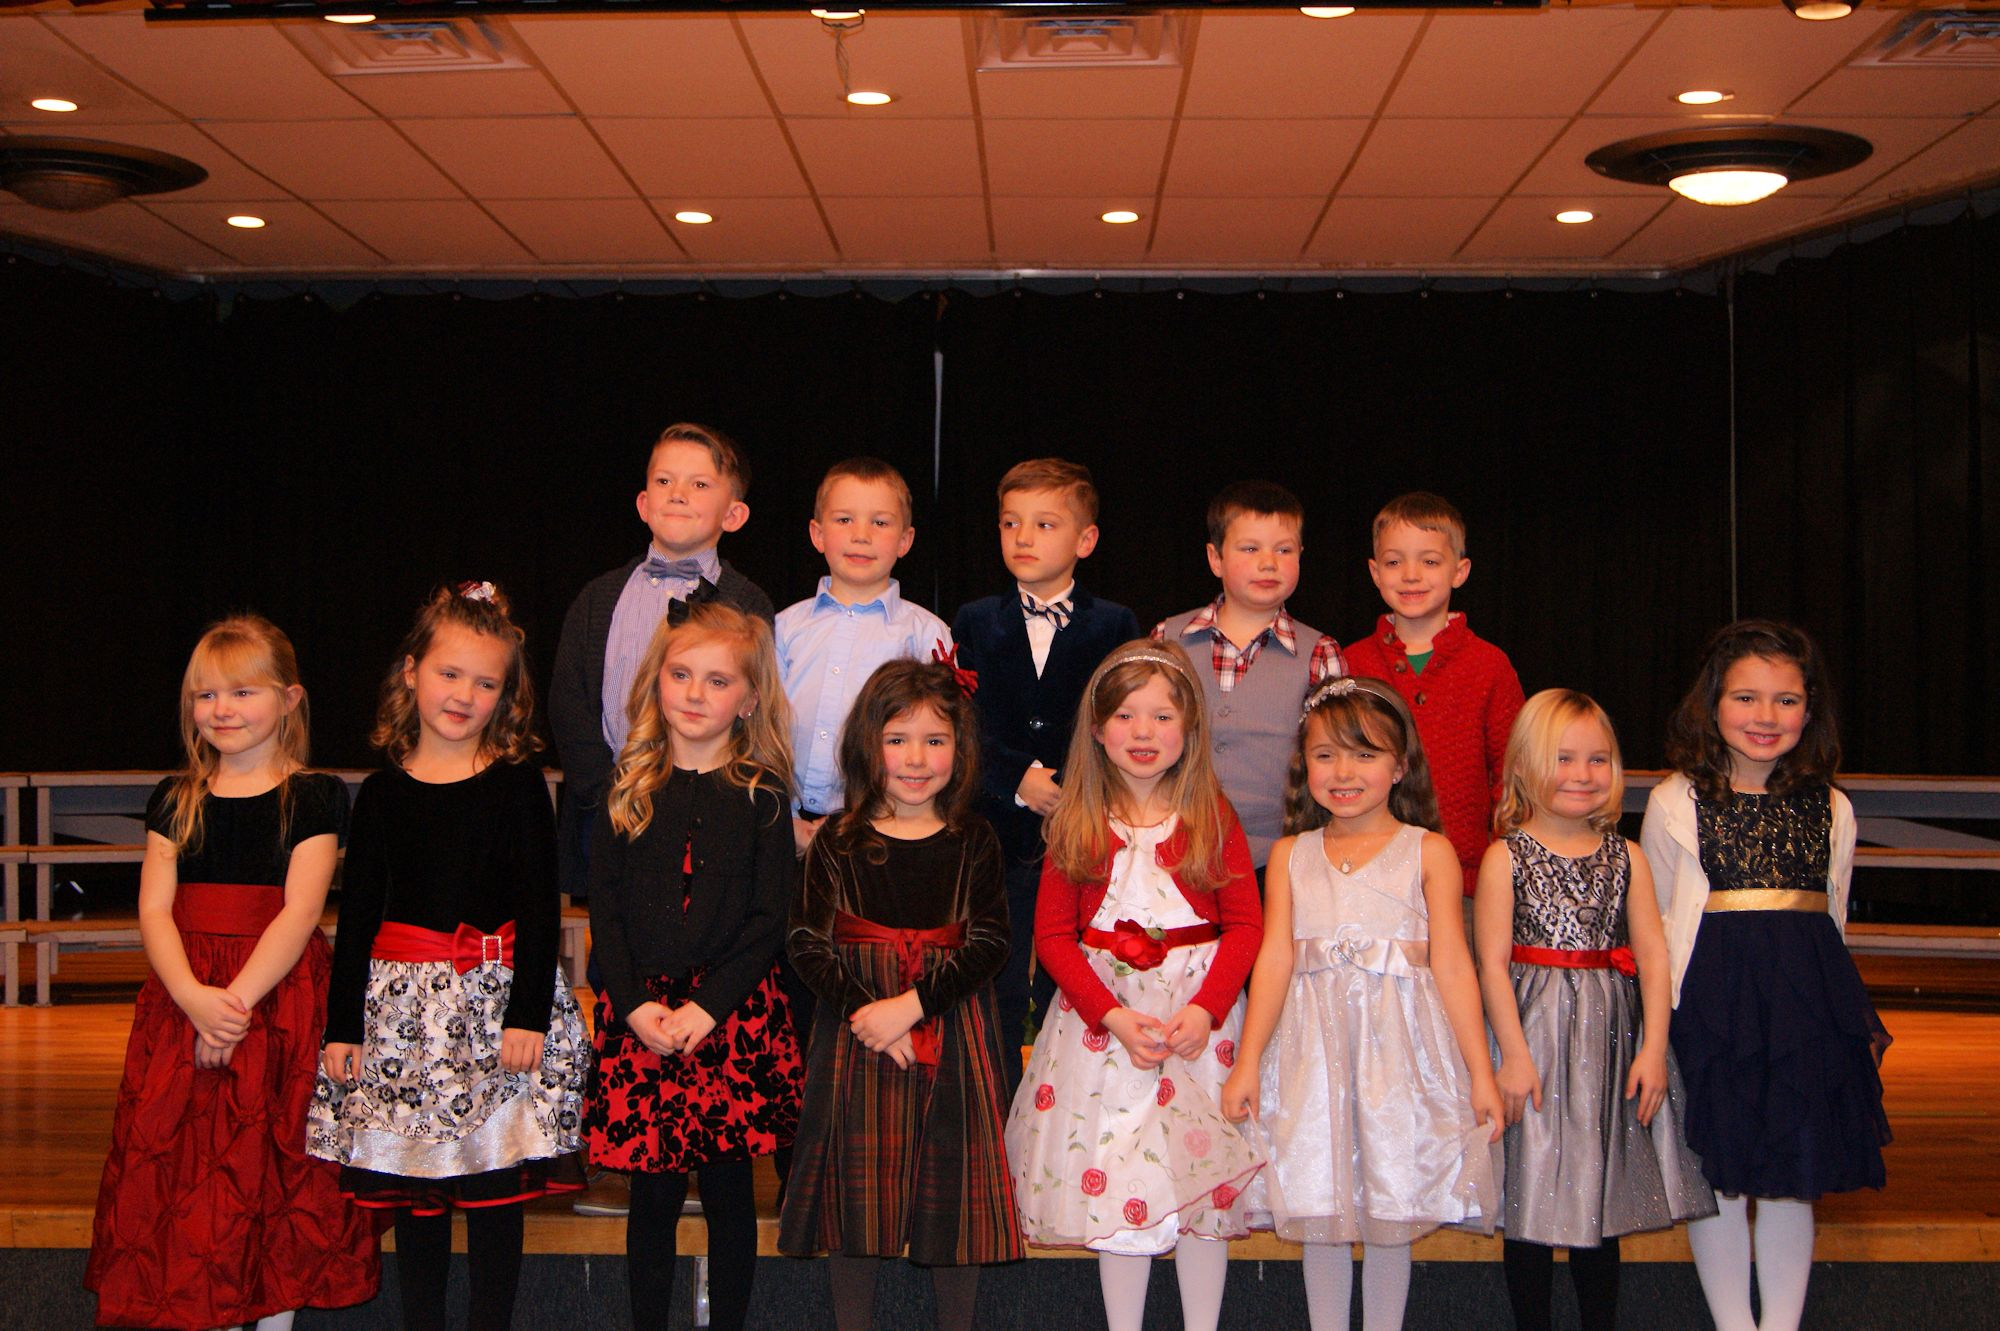 butler catholic schools annual kindergarten and preschool christmas program will be held on two dates this year mrs ritsons kindergarten class and mrs